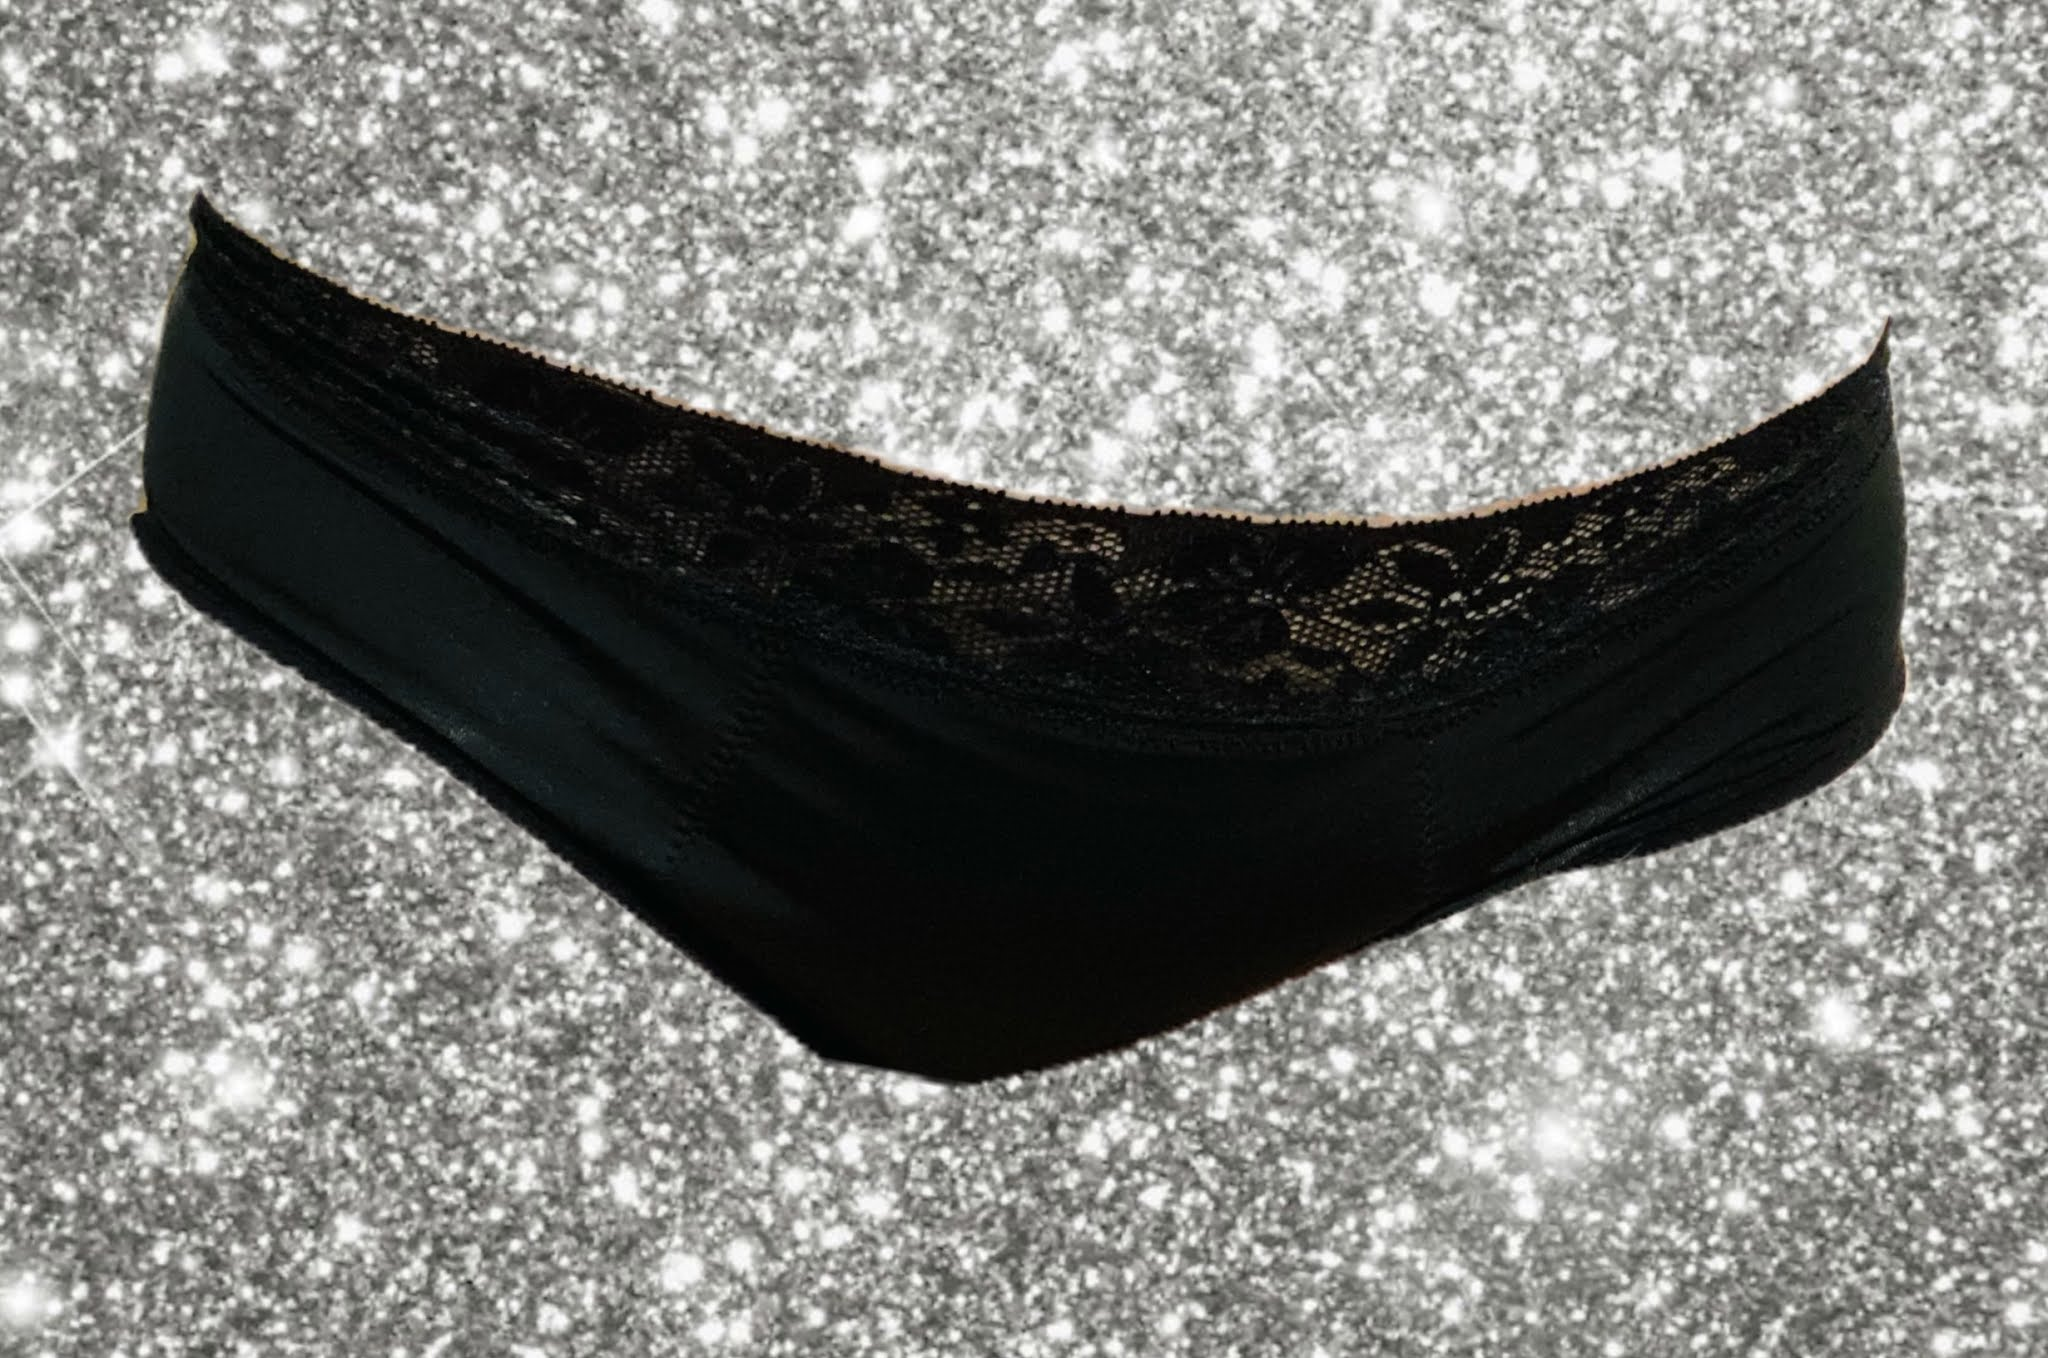 Cheeky wipes feeling pretty period pants in black with lace at the top against a silver sparkly backdrop